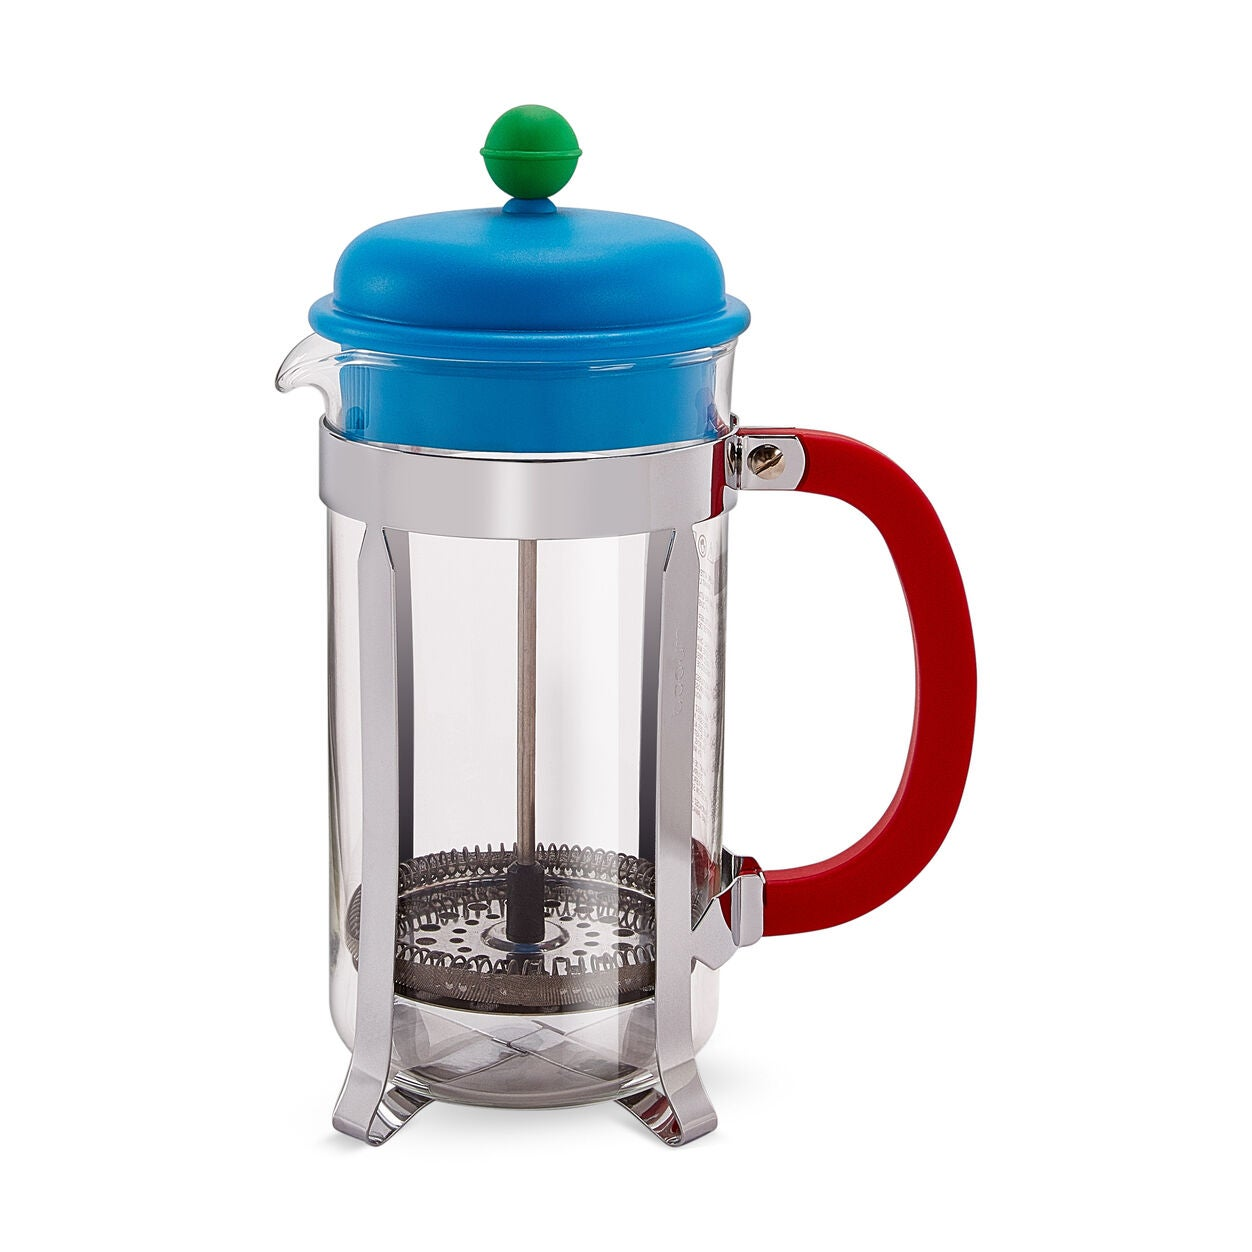 Quirky French press with blue top and red handle